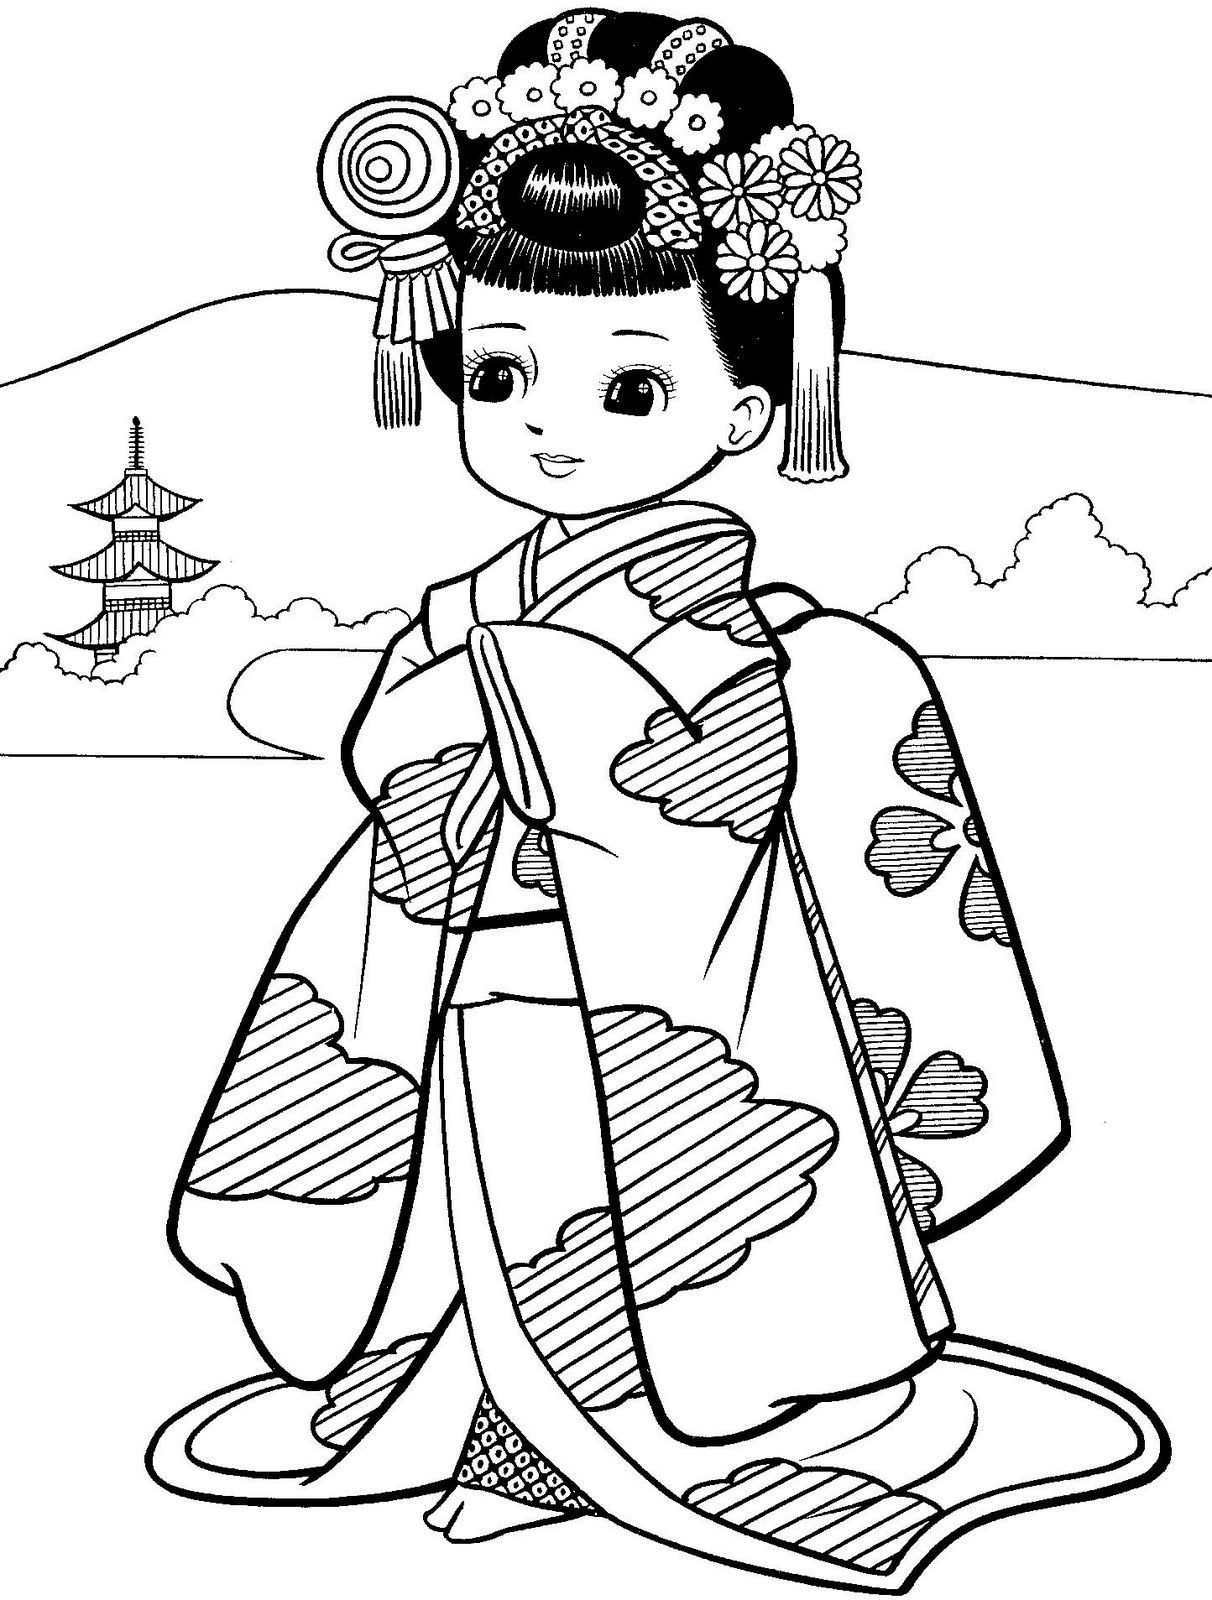 Girl in Kimono Arts & Crafts and DIY  Japanese embroidery